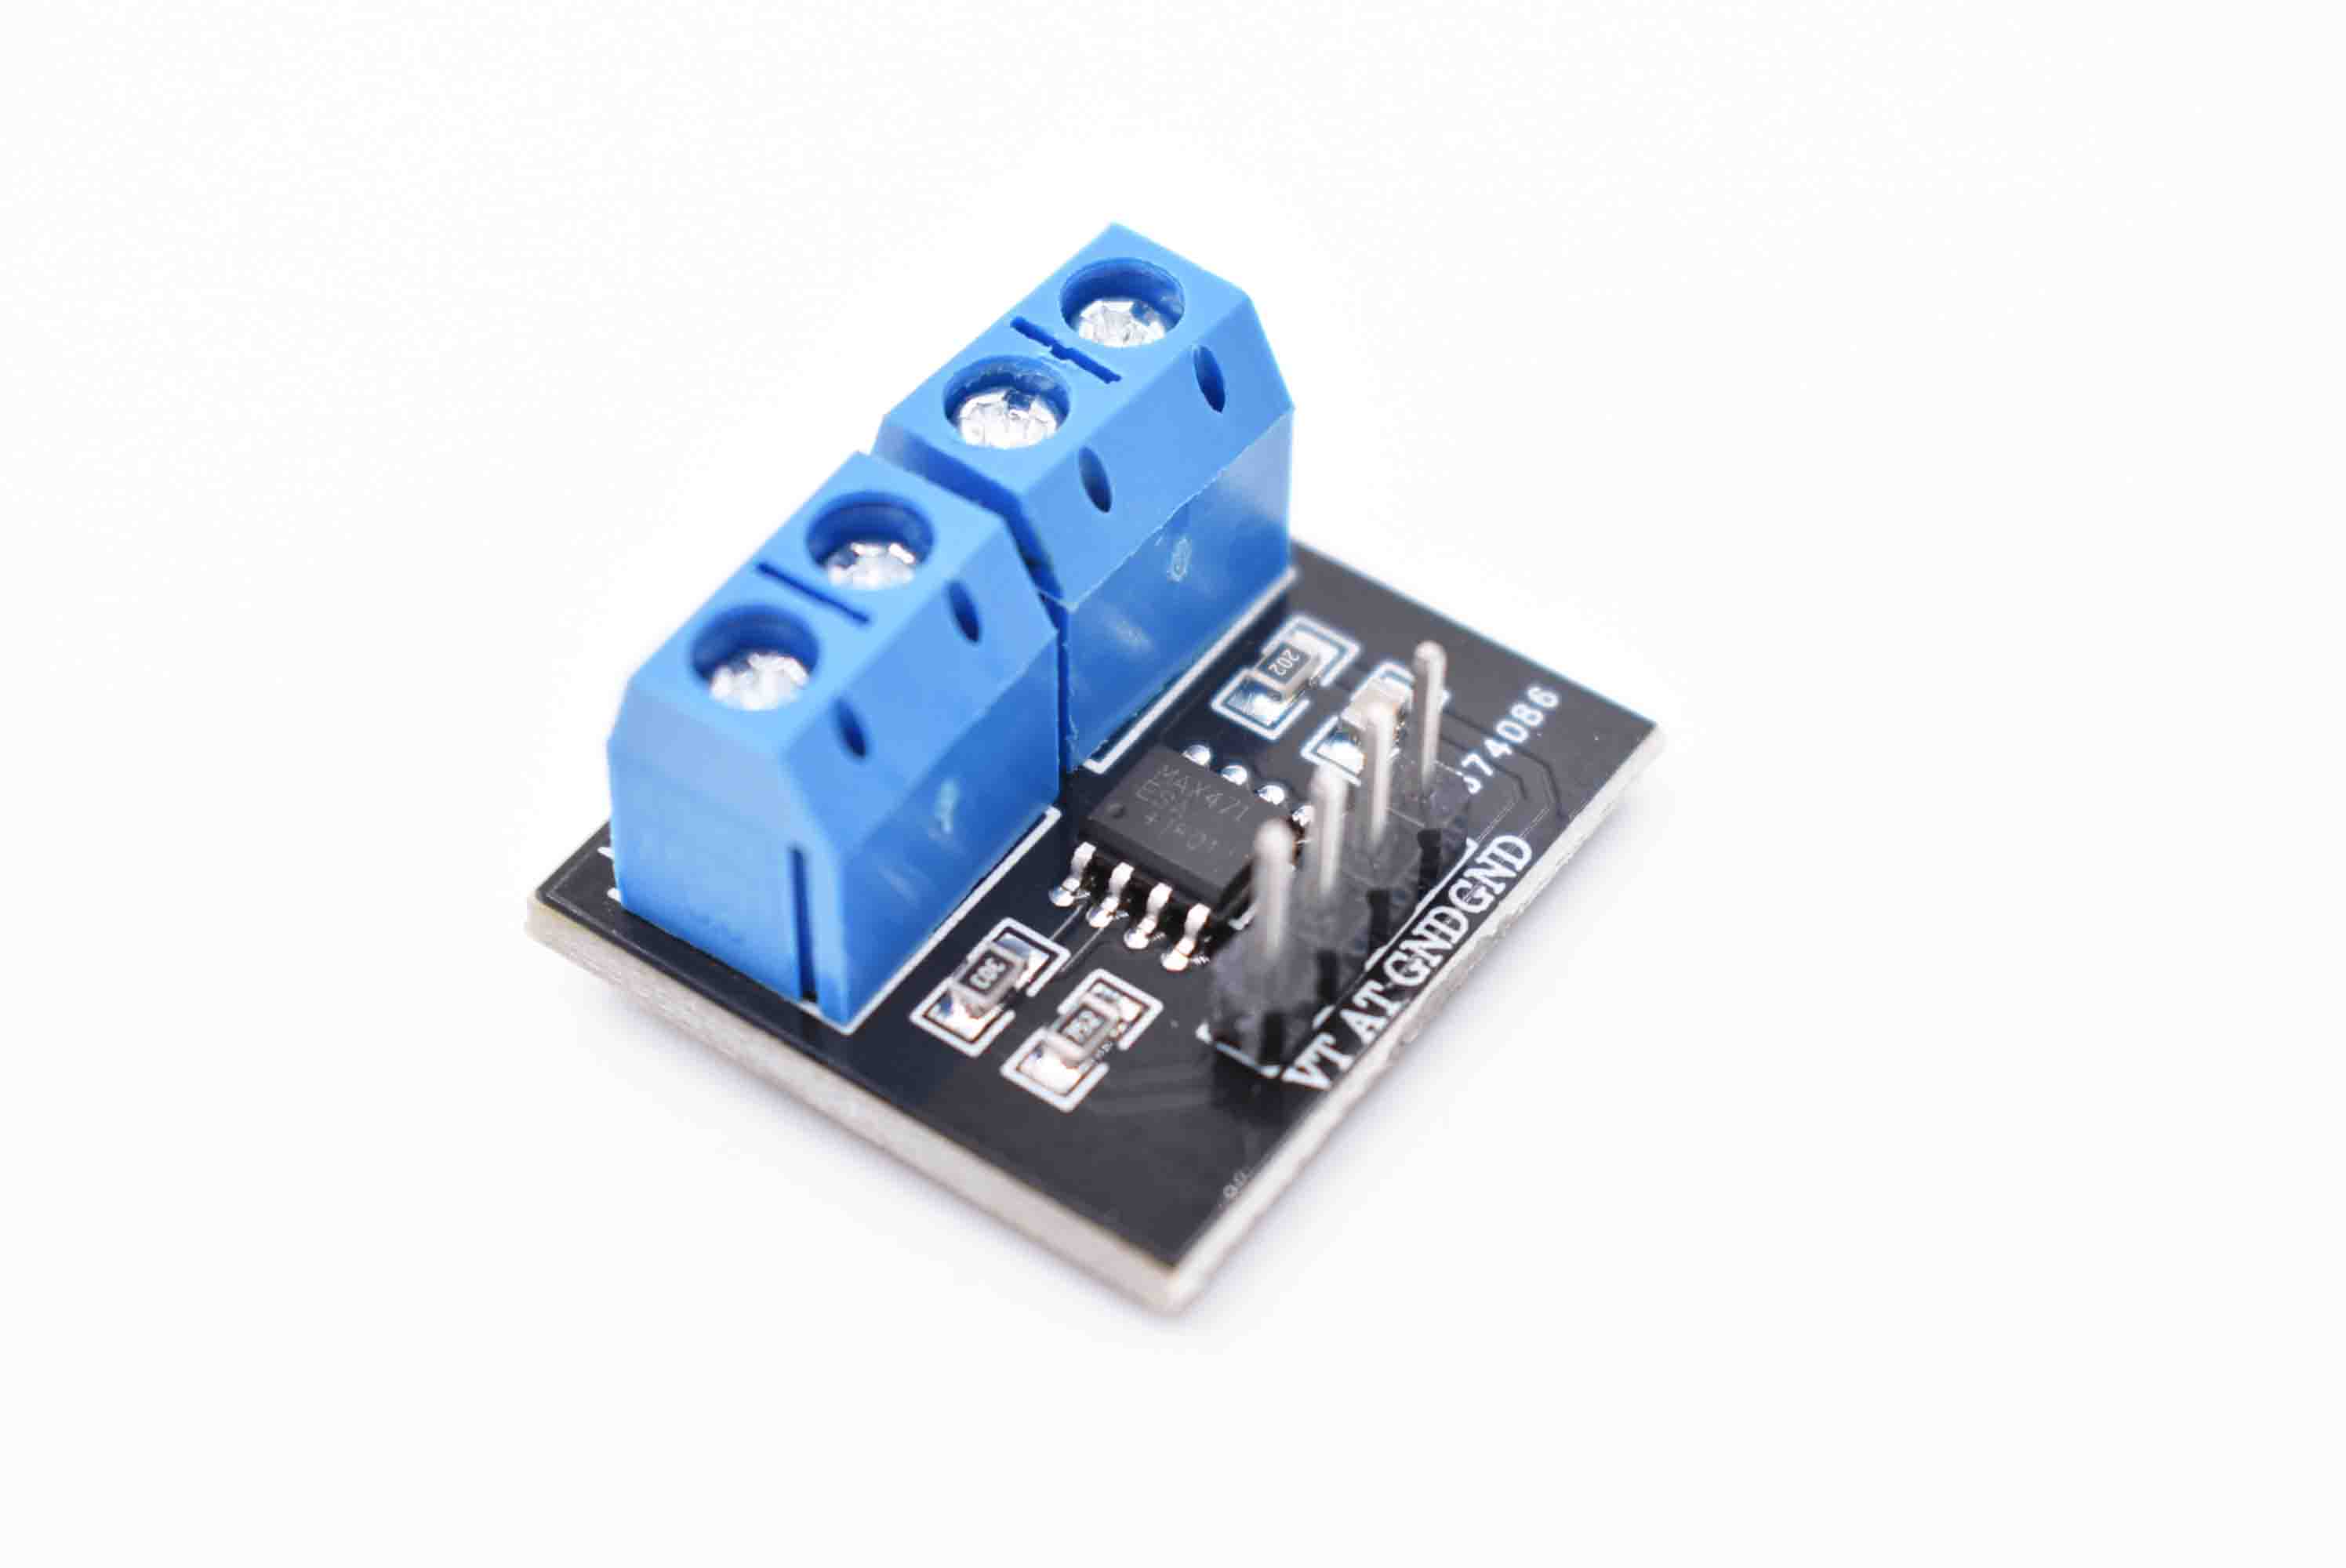 max471-voltage-current-sensor-module-for-font-b-arduino-b-font-tester-board-5v-dc-3-25v-0-3a